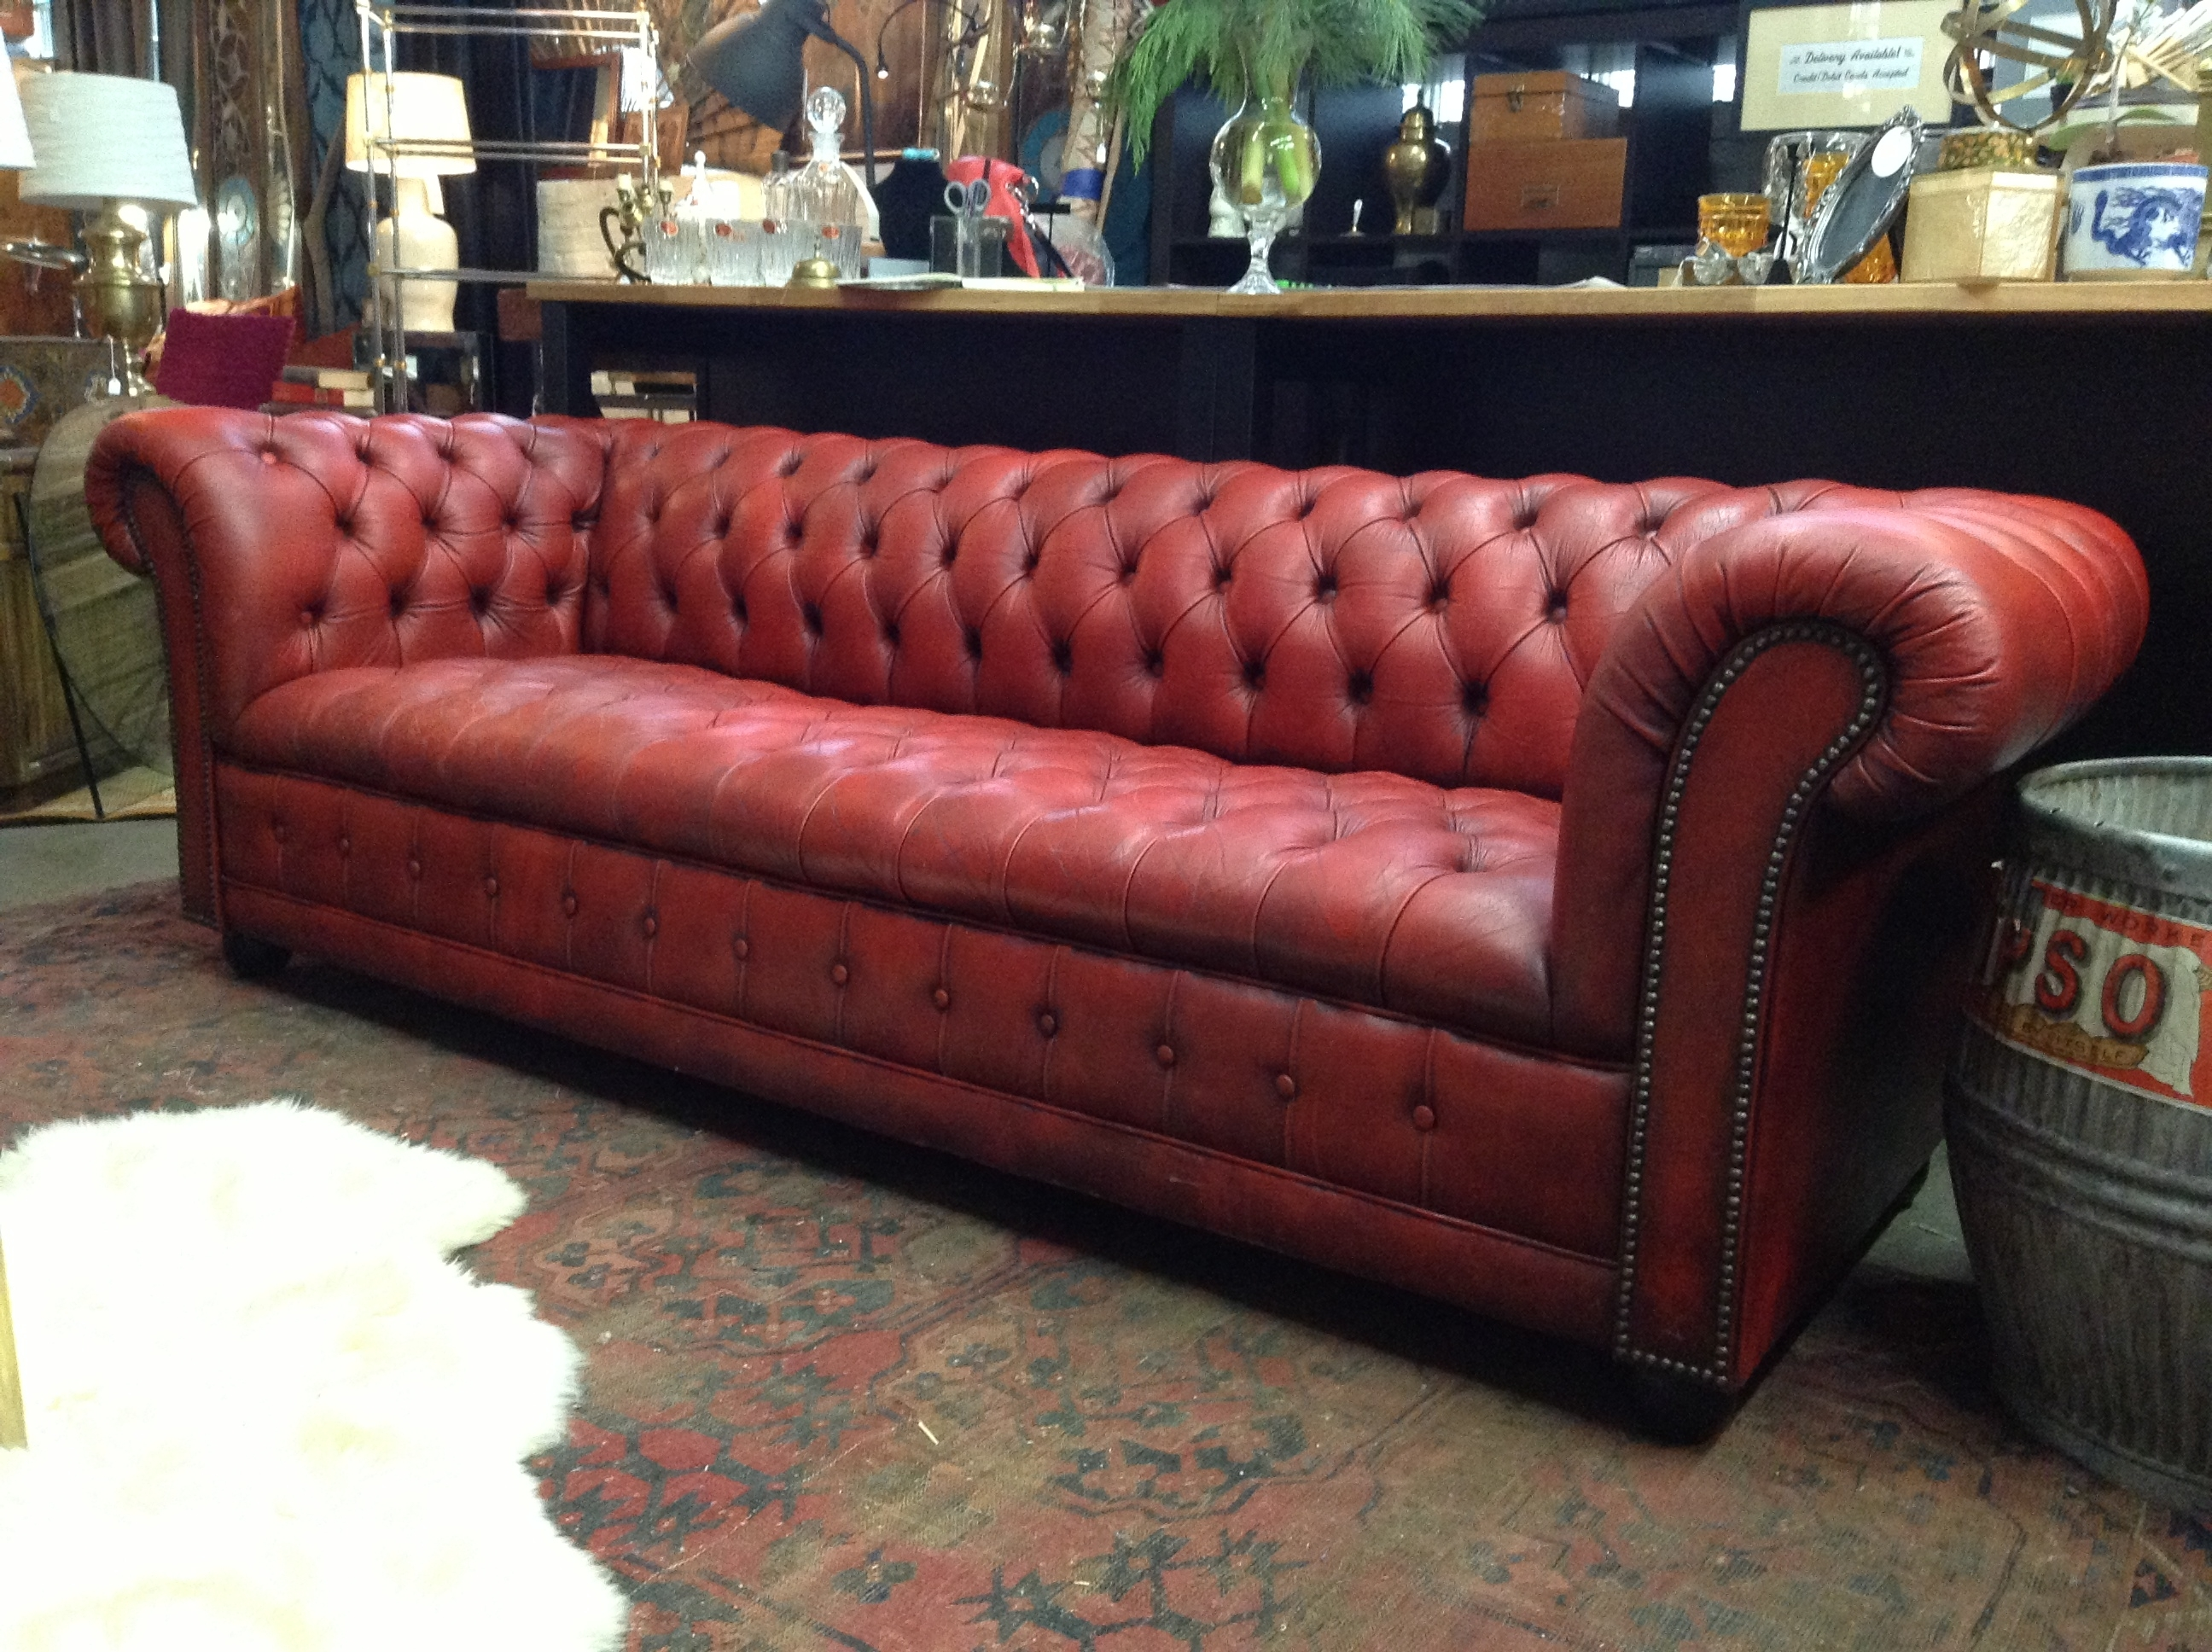 Red Leather Sofa | Aifaresidency In Red Leather Couches (View 8 of 10)